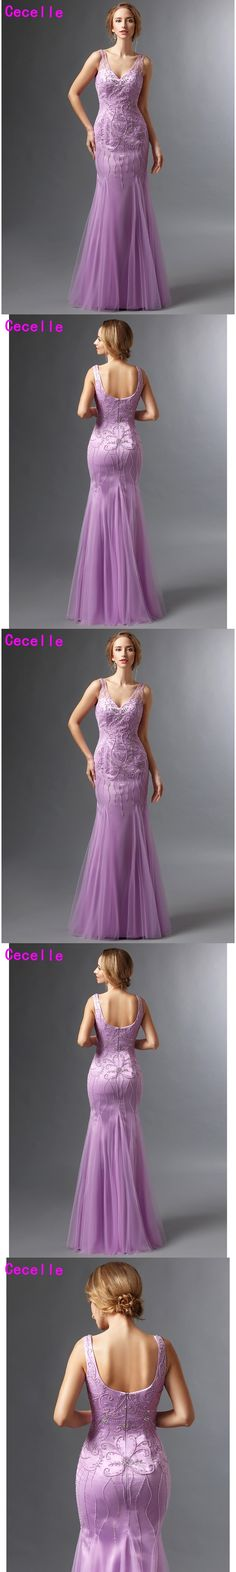 Lilac Mermaid Tulle Mother Of The Bride Dresses With Straps Long V-neck 2017 Crystal Beaded Wedding Party Gowns Gorgous Real